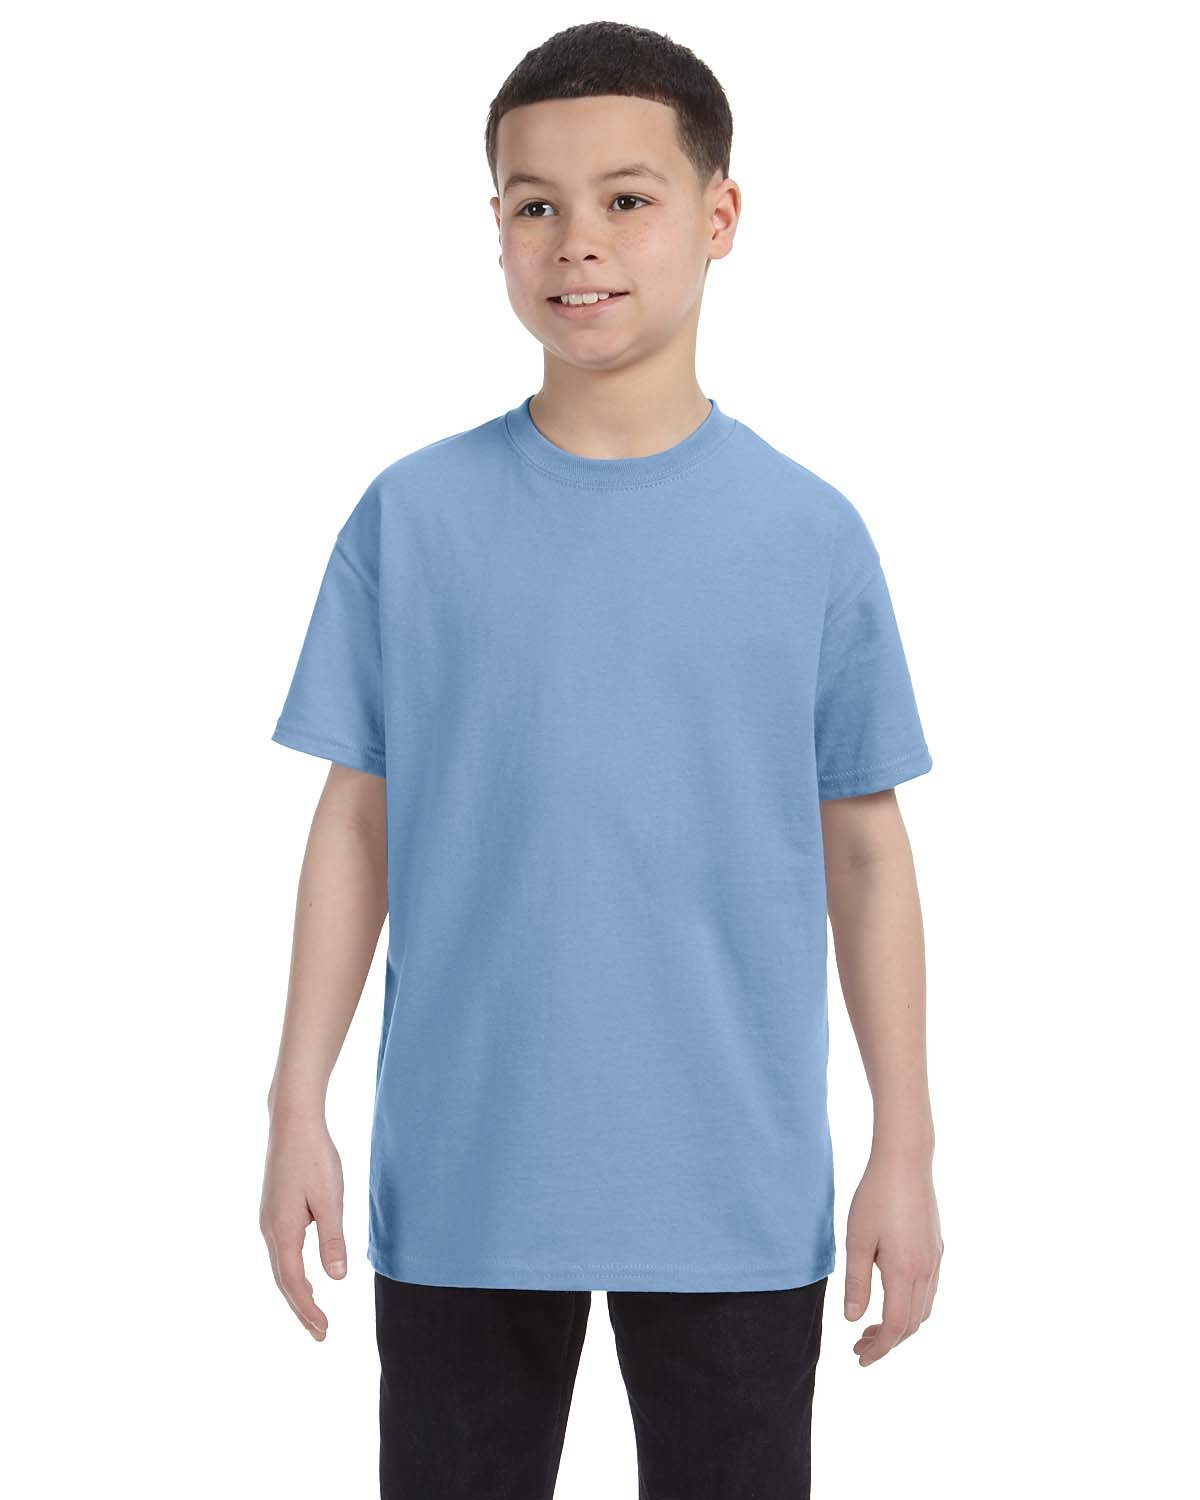 Hanes Youth Authentic-T T-Shirt LIGHT BLUE